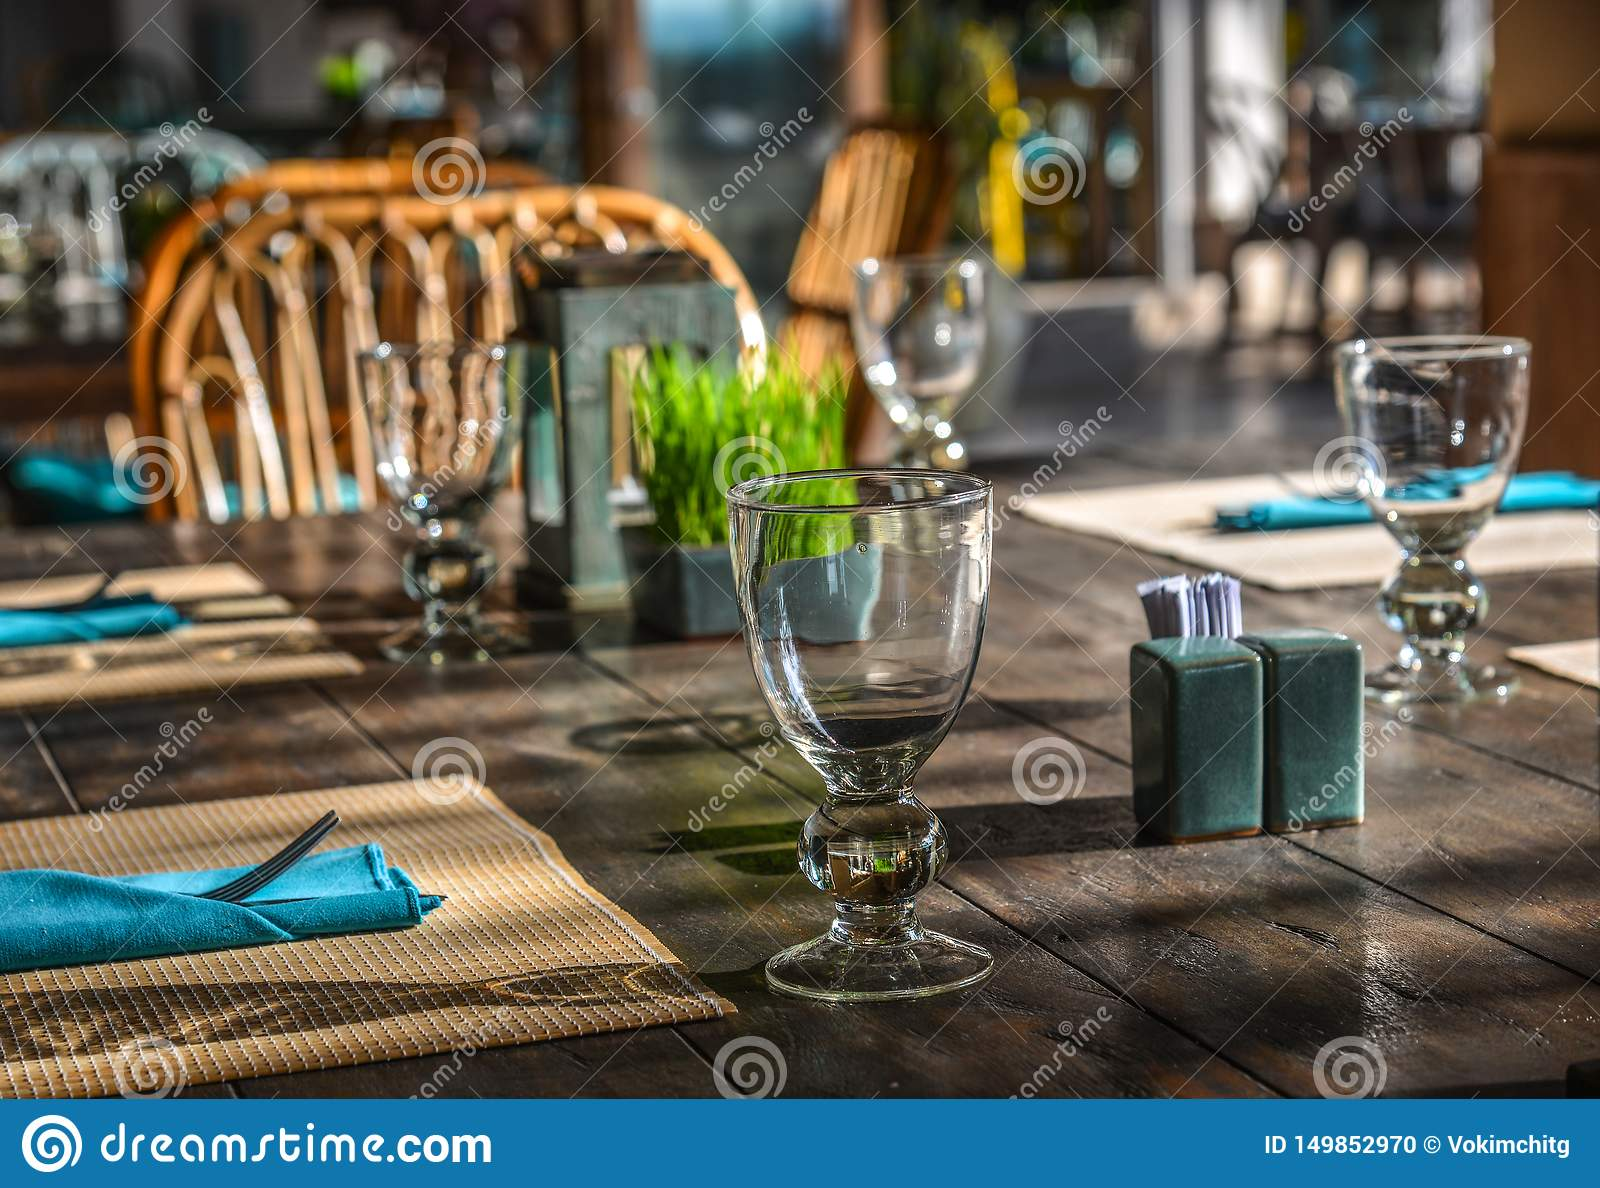 Outdoor Furniture In The Luxury Restaurant Stock Photo Image Of Architecture Decoration 149852970